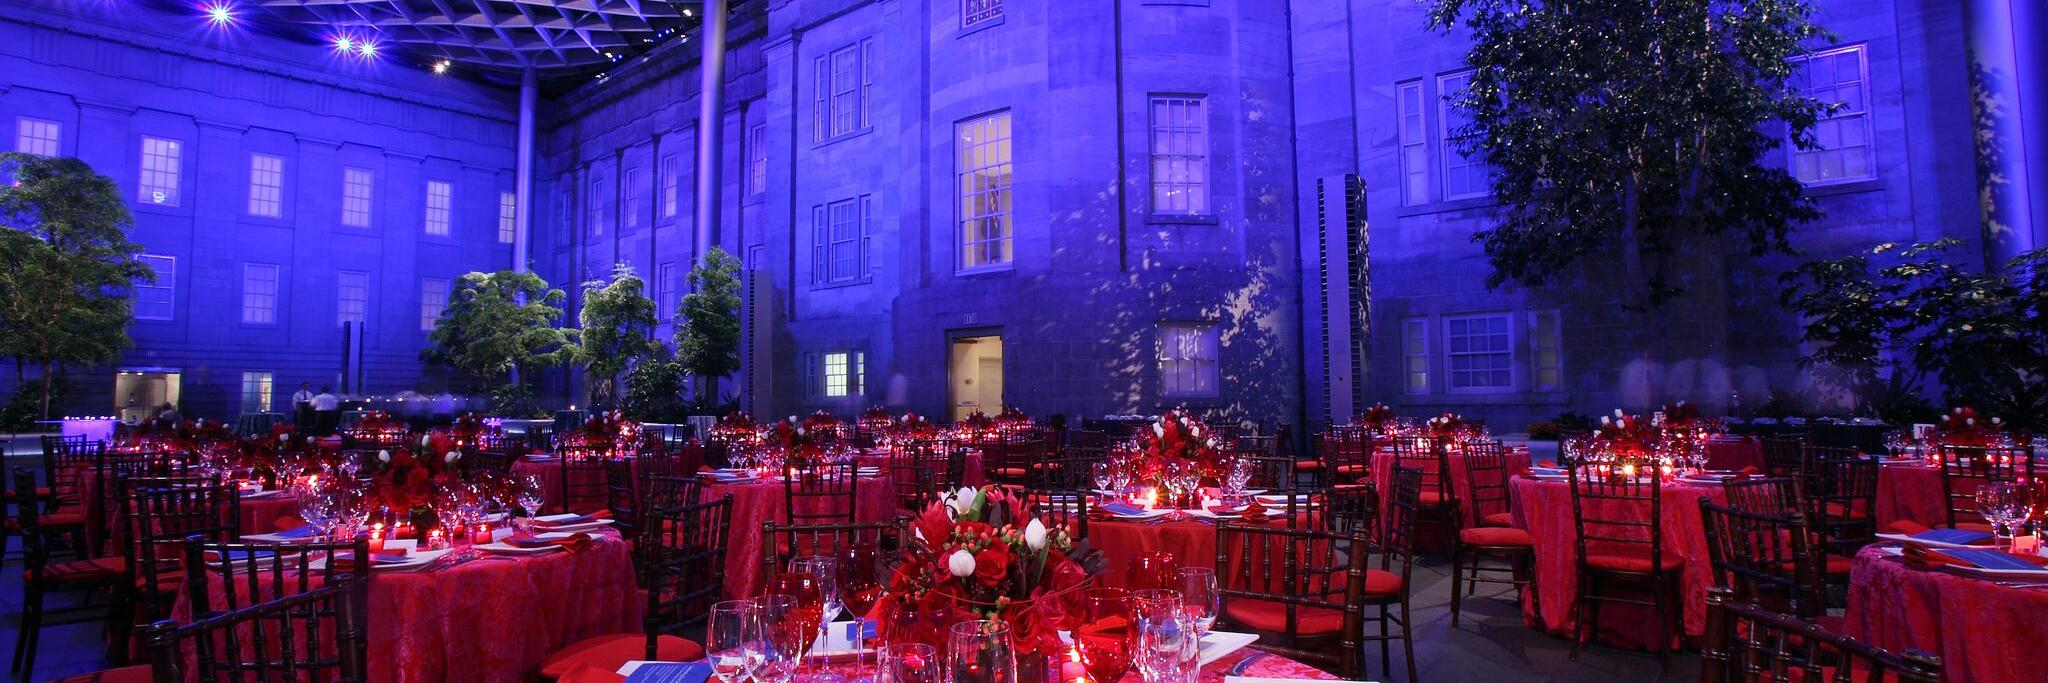 This is an image taken at night inside the Kogod Courtyard of the Smithsonian American Art Museum.